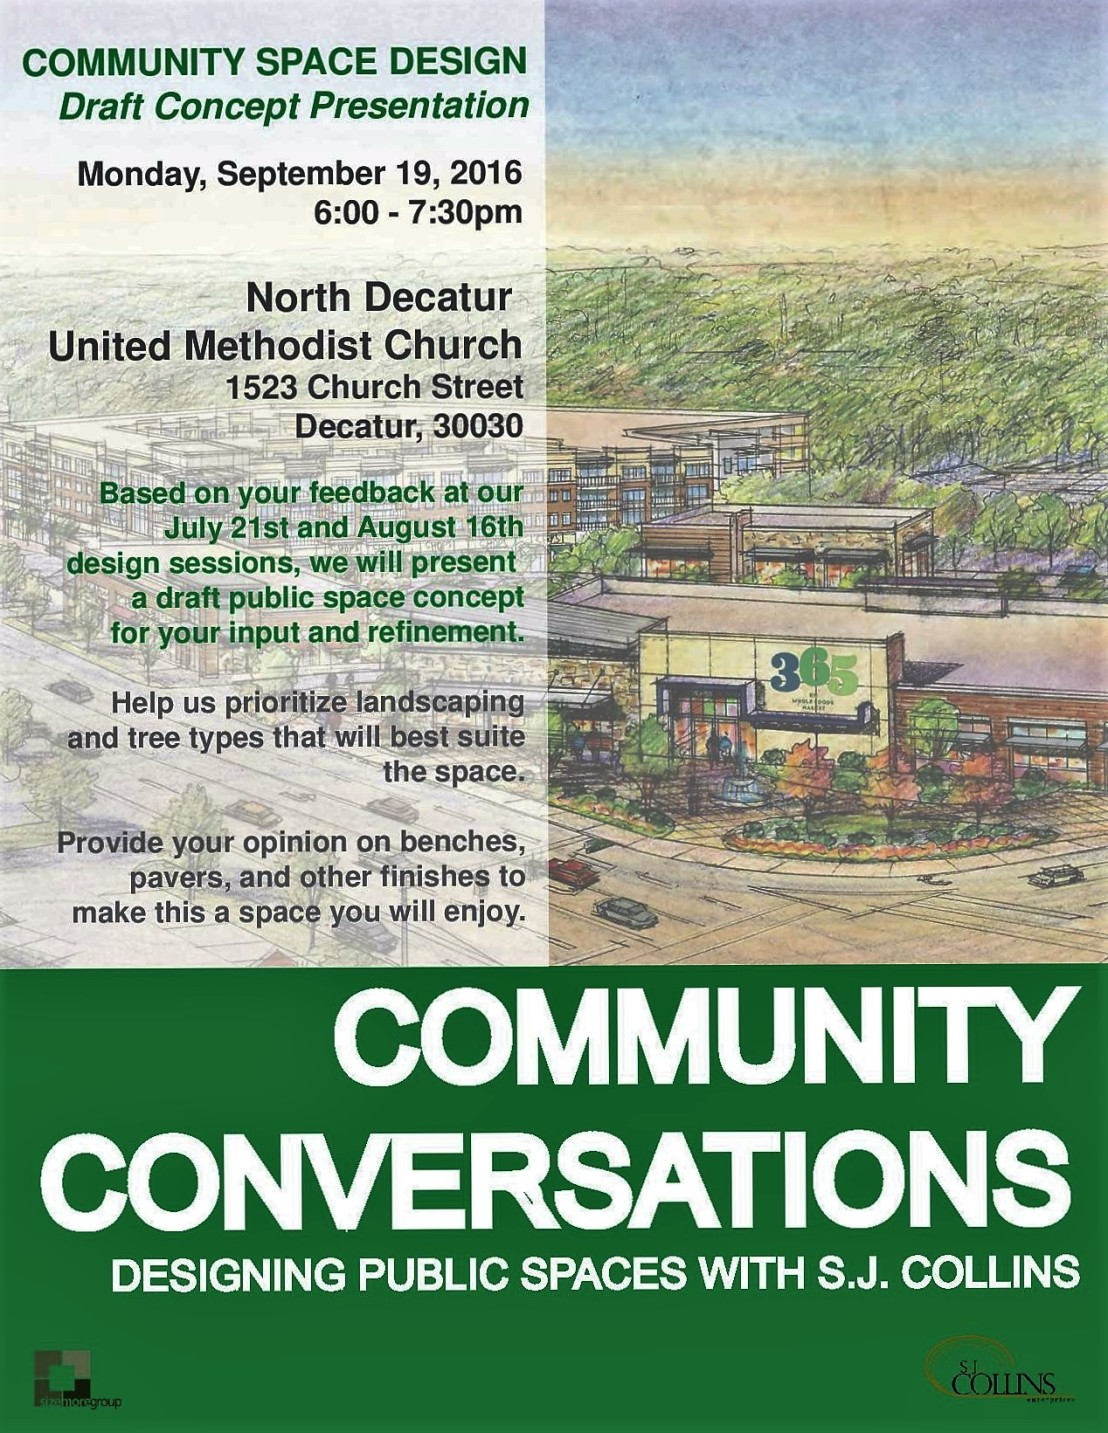 communityconversation3_medline-page-001-2